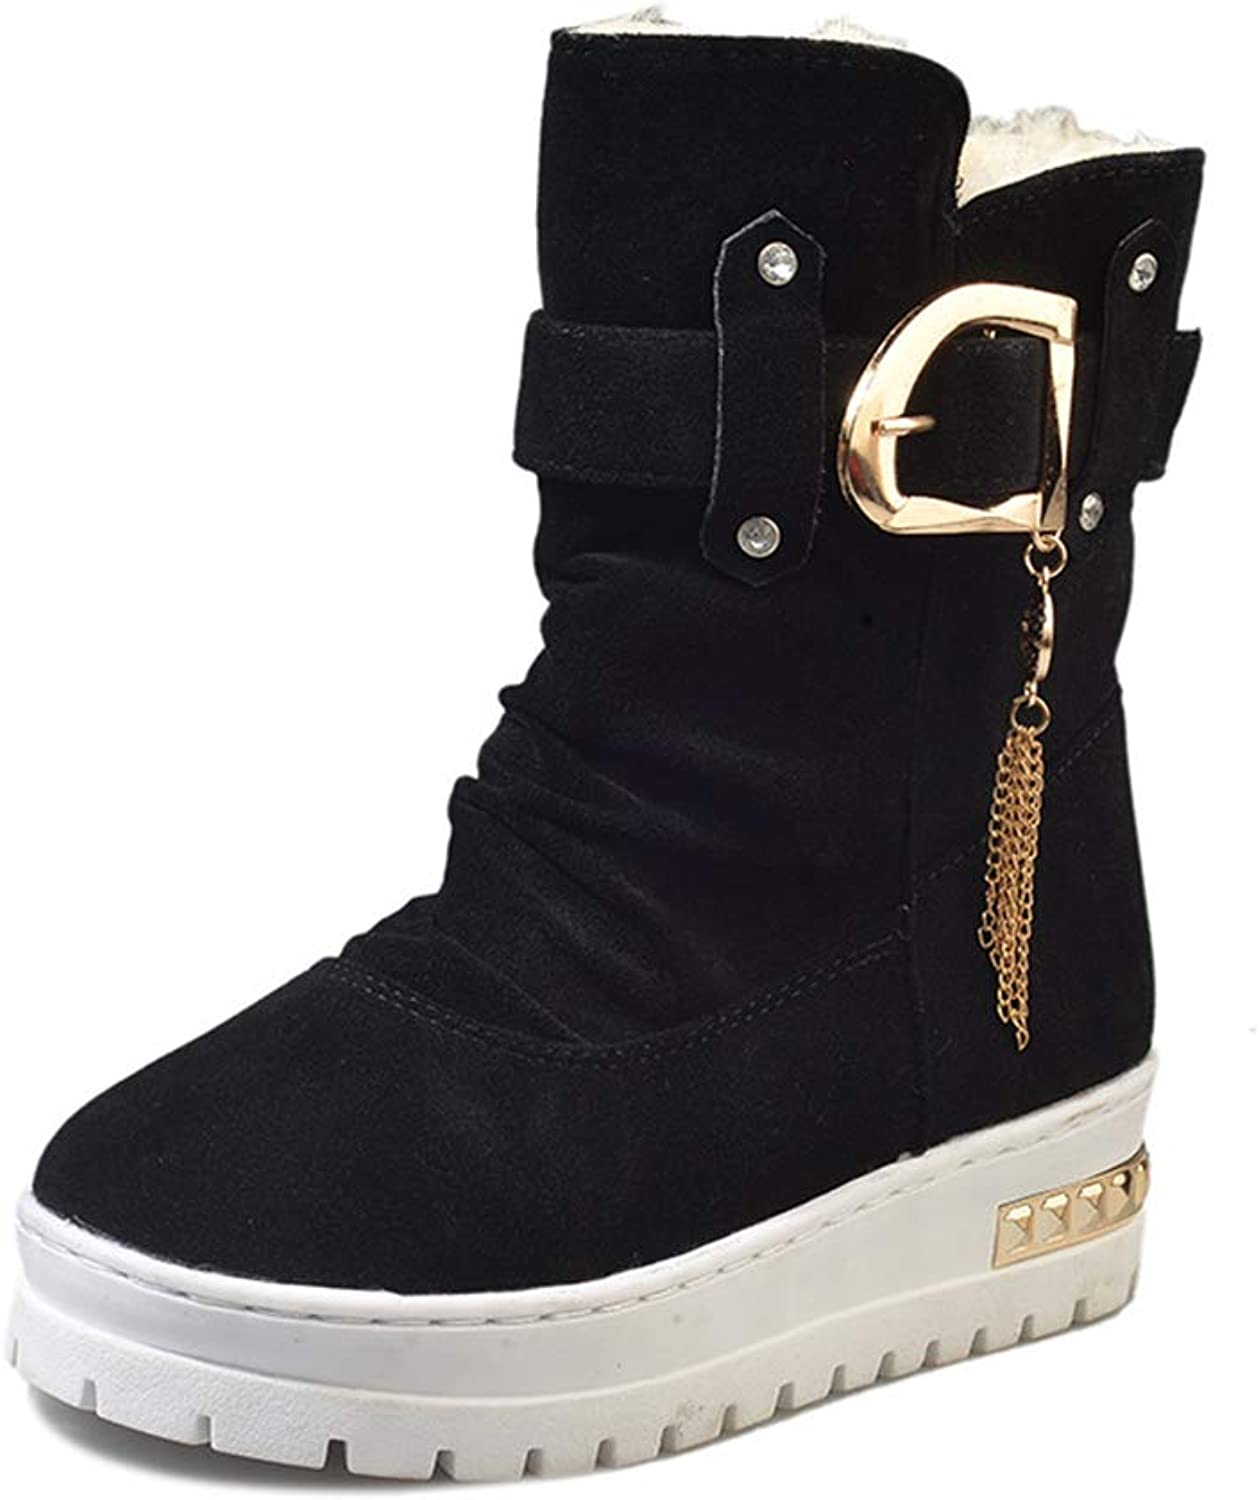 Super explosion Women's Ankle Waterproof Winter Snow Boots with Buckle Strips Warm Booties shoes